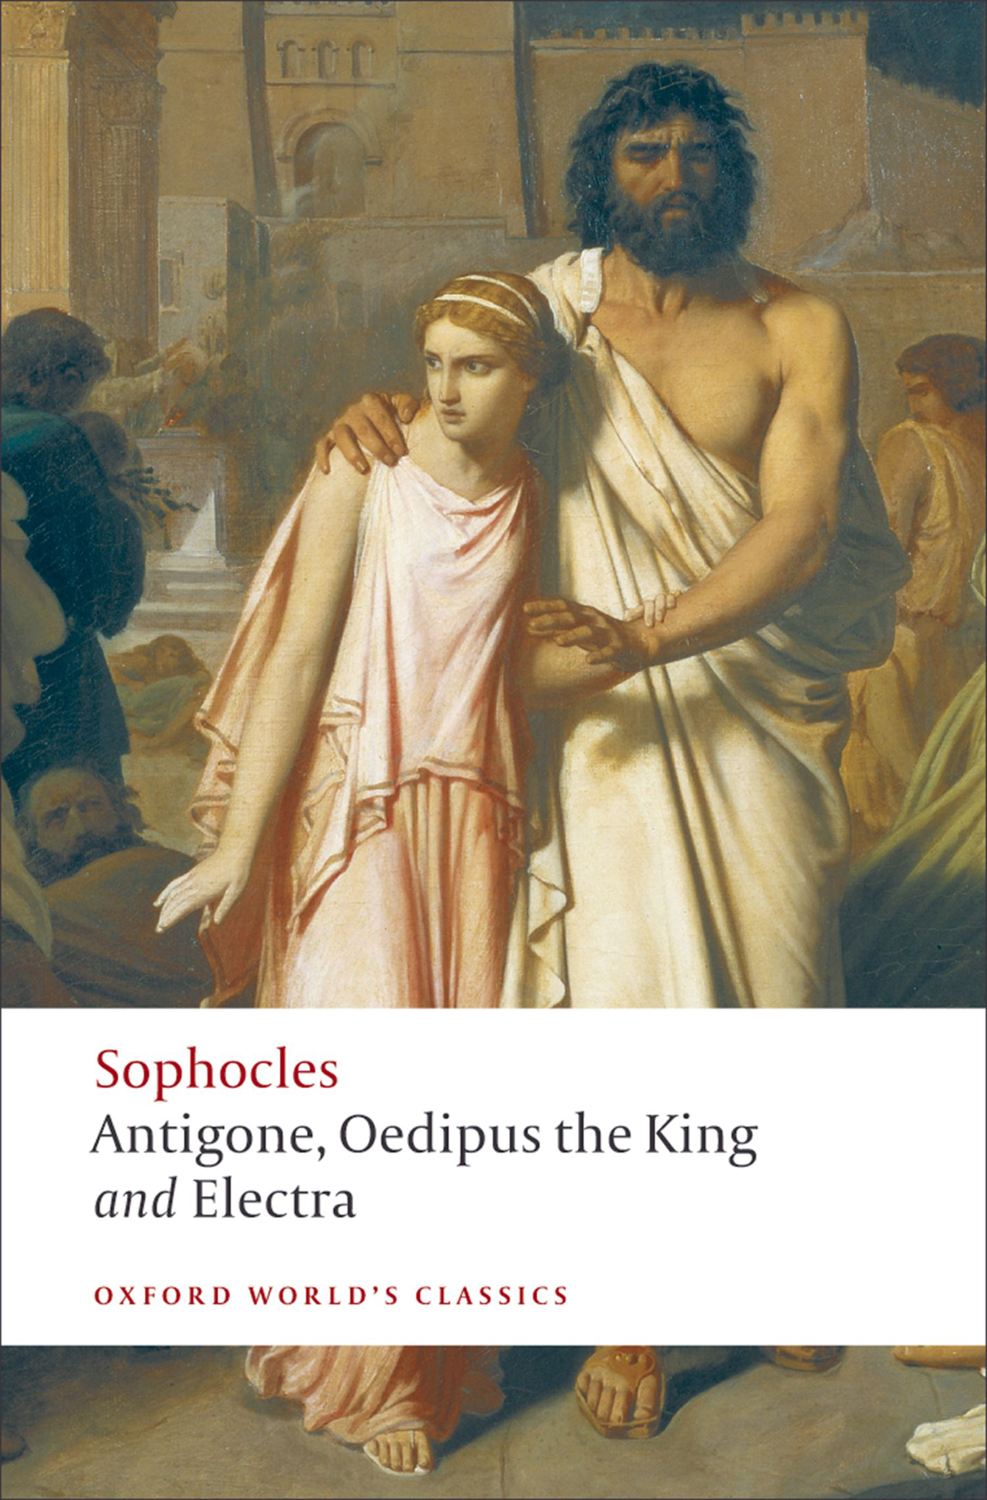 oedipus the king and hamlet gains Related documents: oedipus and hamlet essay oedipus: oedipus and oedipus rex oedipus essay examples the decline of oedipus in oedipus rex oedipus began oedipus rex as a king, only to end the tale as a blinded beggar.